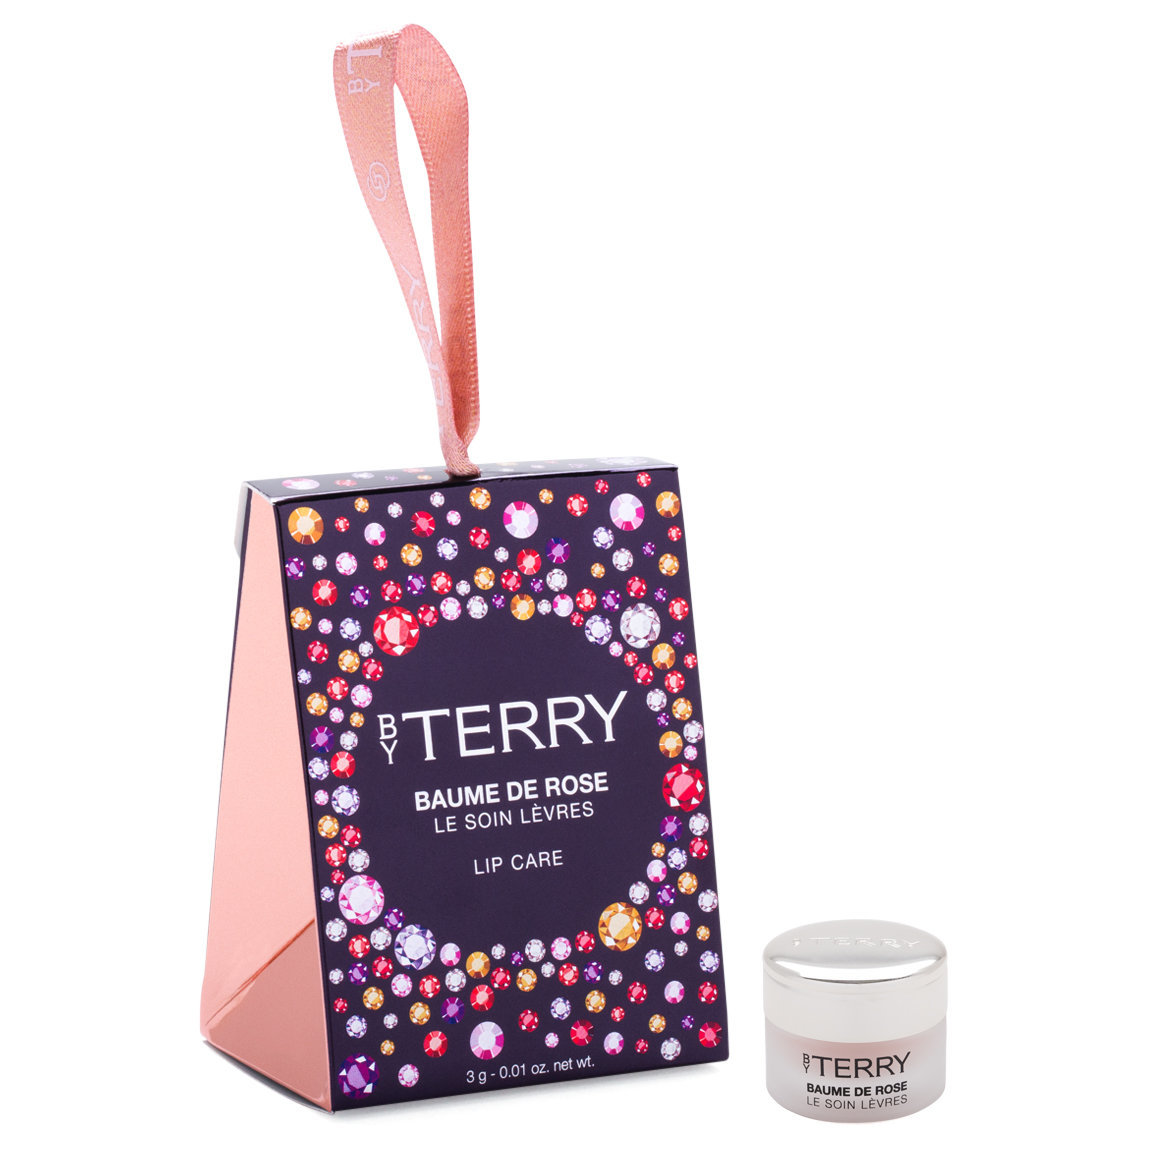 BY TERRY Gem Glow Baume De Rose Lip Care product smear.